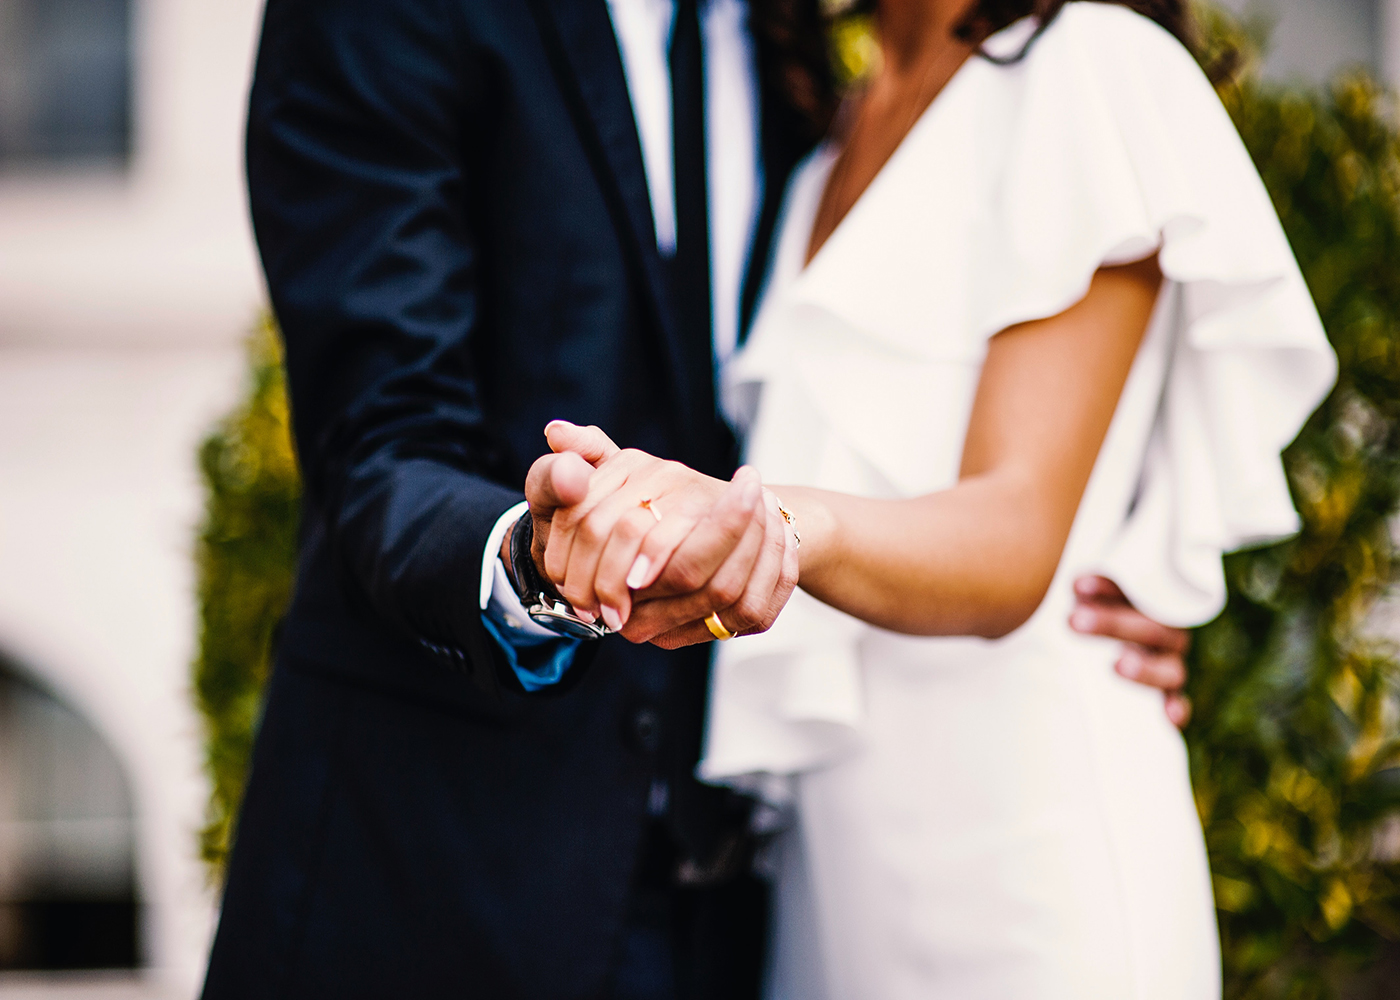 Getting Remarried Soon? Add These 5 Financial Tasks to Your To-Do List Thumbnail